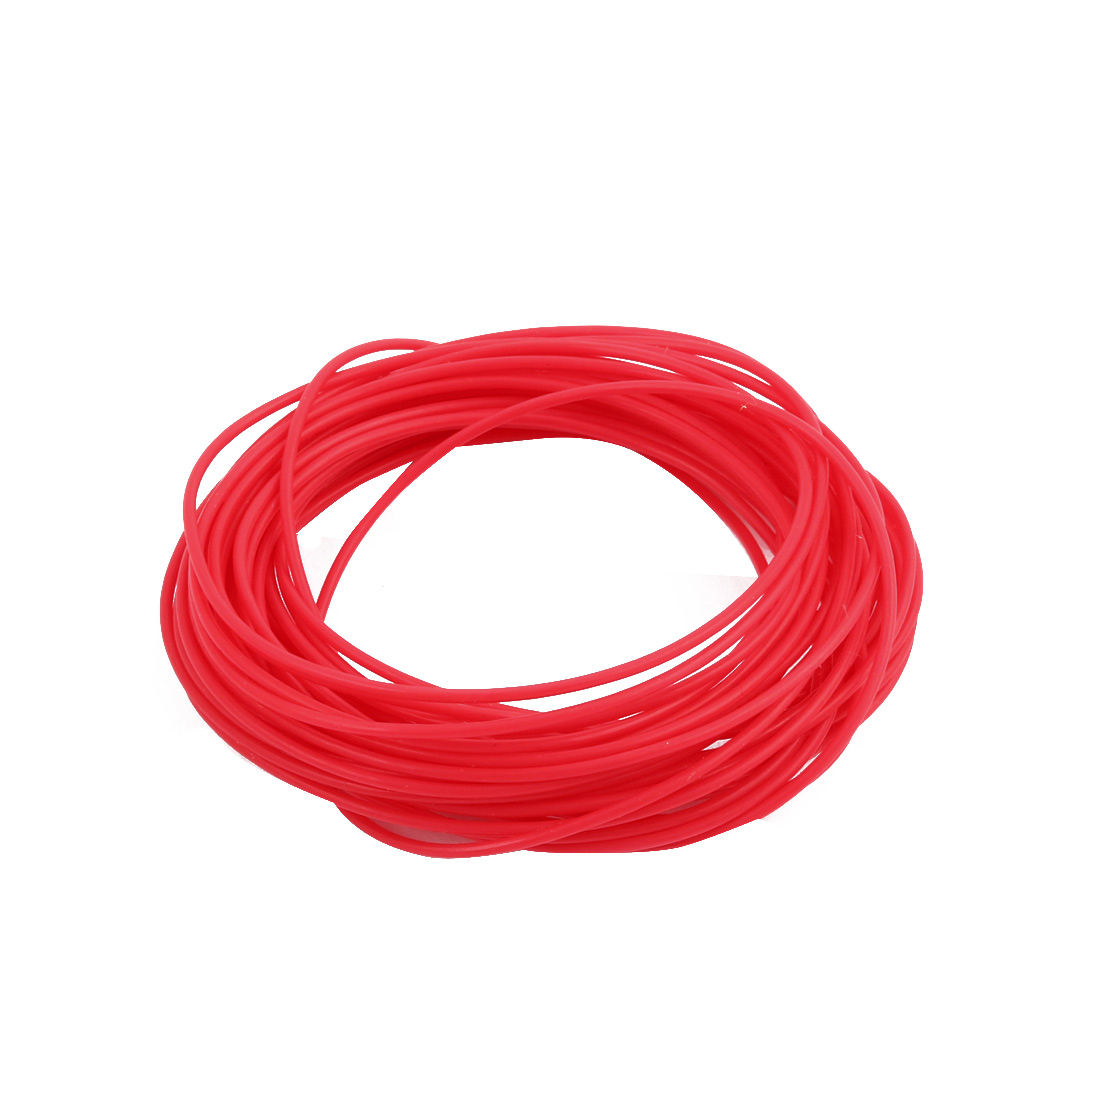 0.86mmx1.16mm PTFE Resistant High Temperature Red Tubing 5 Meters 16.4Ft